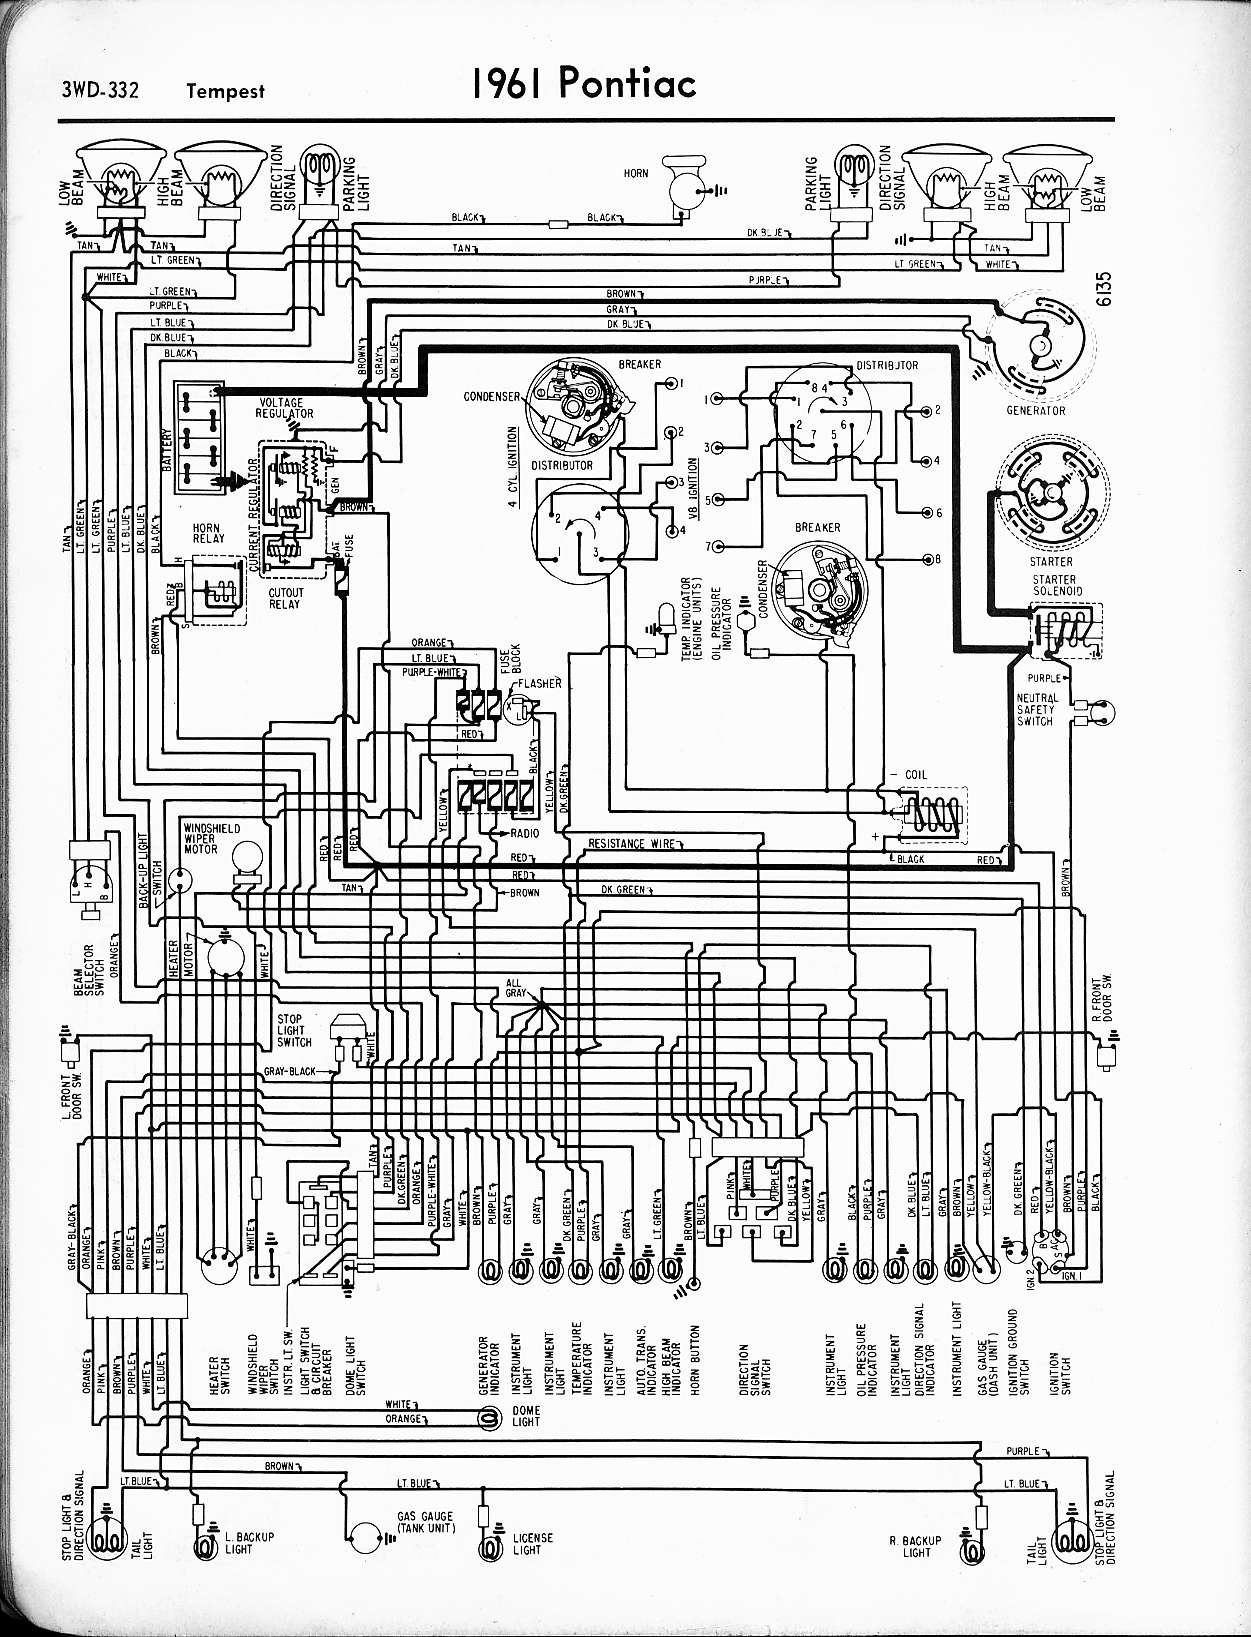 1965 plymouth wiring diagram wiring diagram libraries pontiac wiring diagram schema wiring diagram onlinepontiac wiring 1957 1965 mitsubishi wiring diagrams pontiac wiring diagram